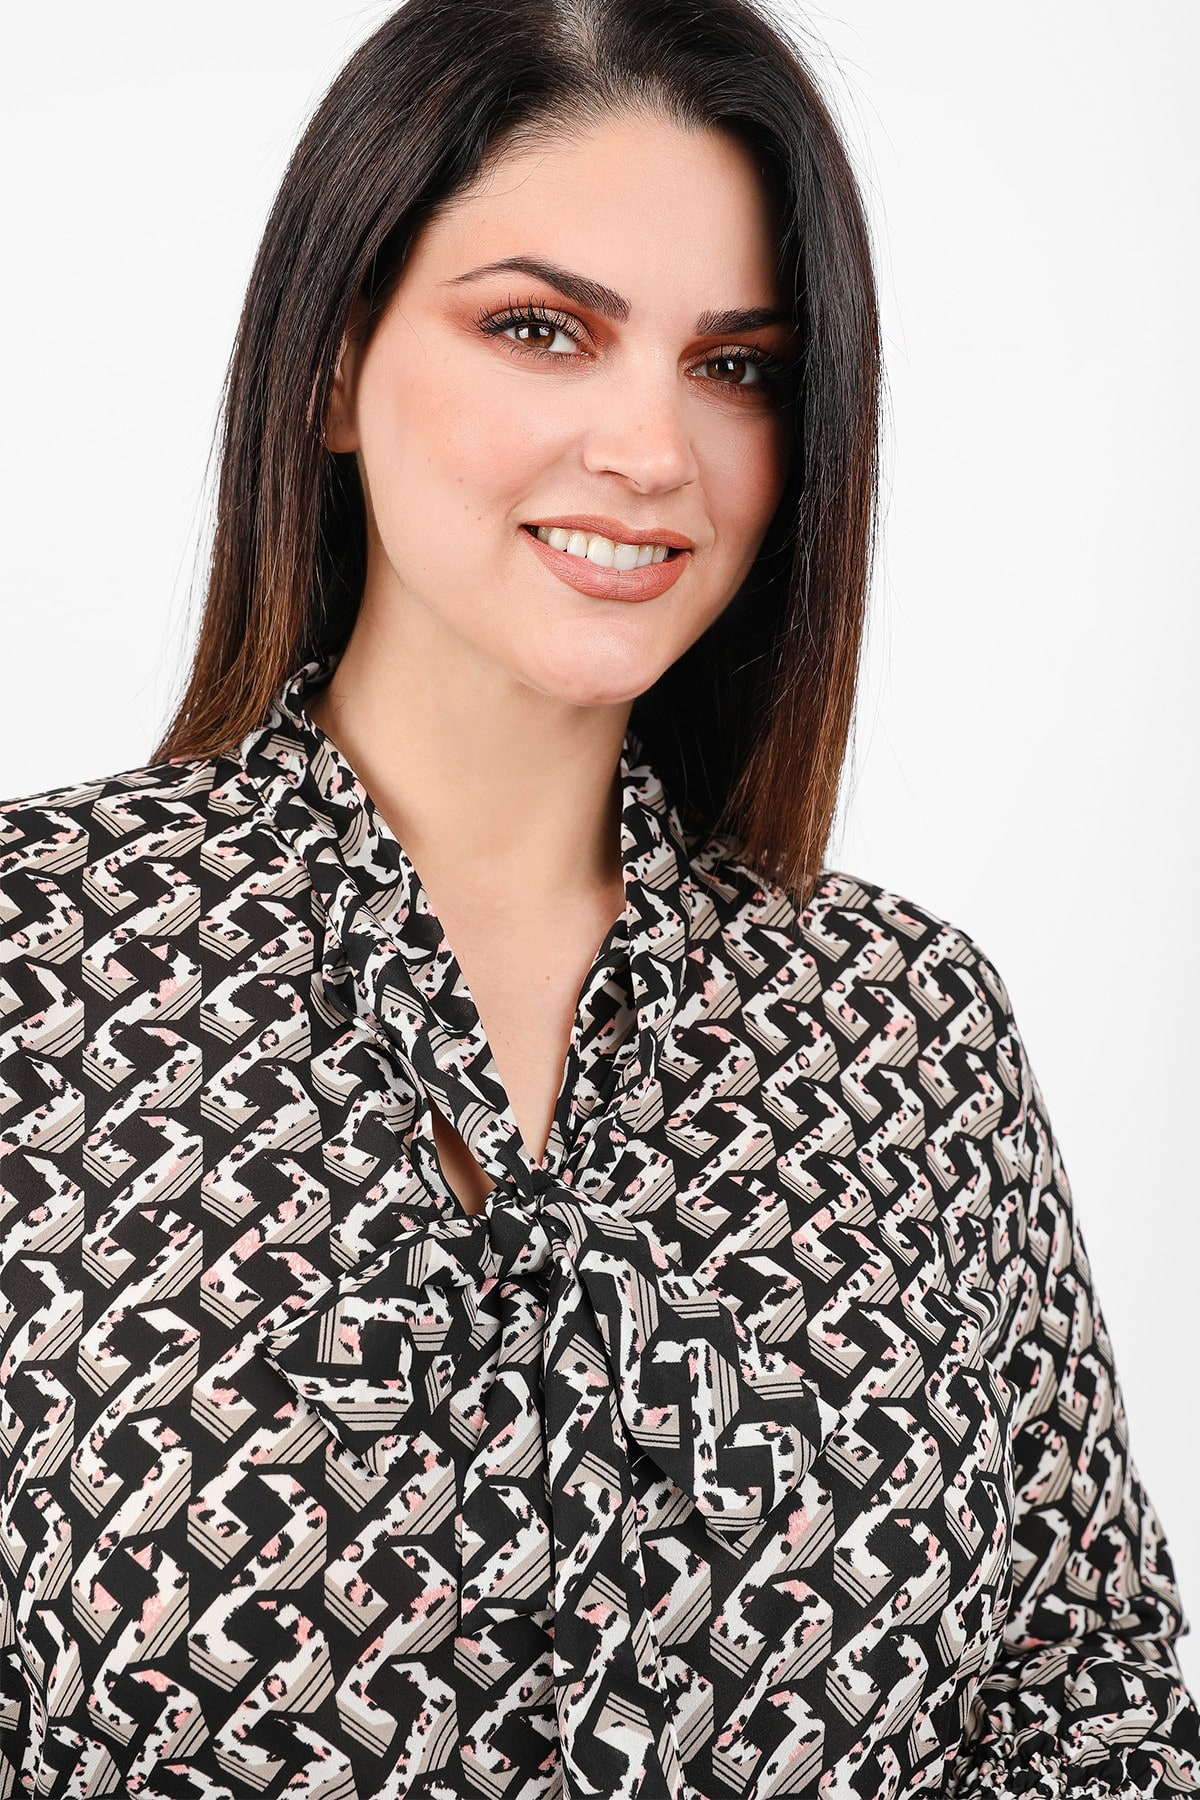 Printed shirtblouse with embossed scarf